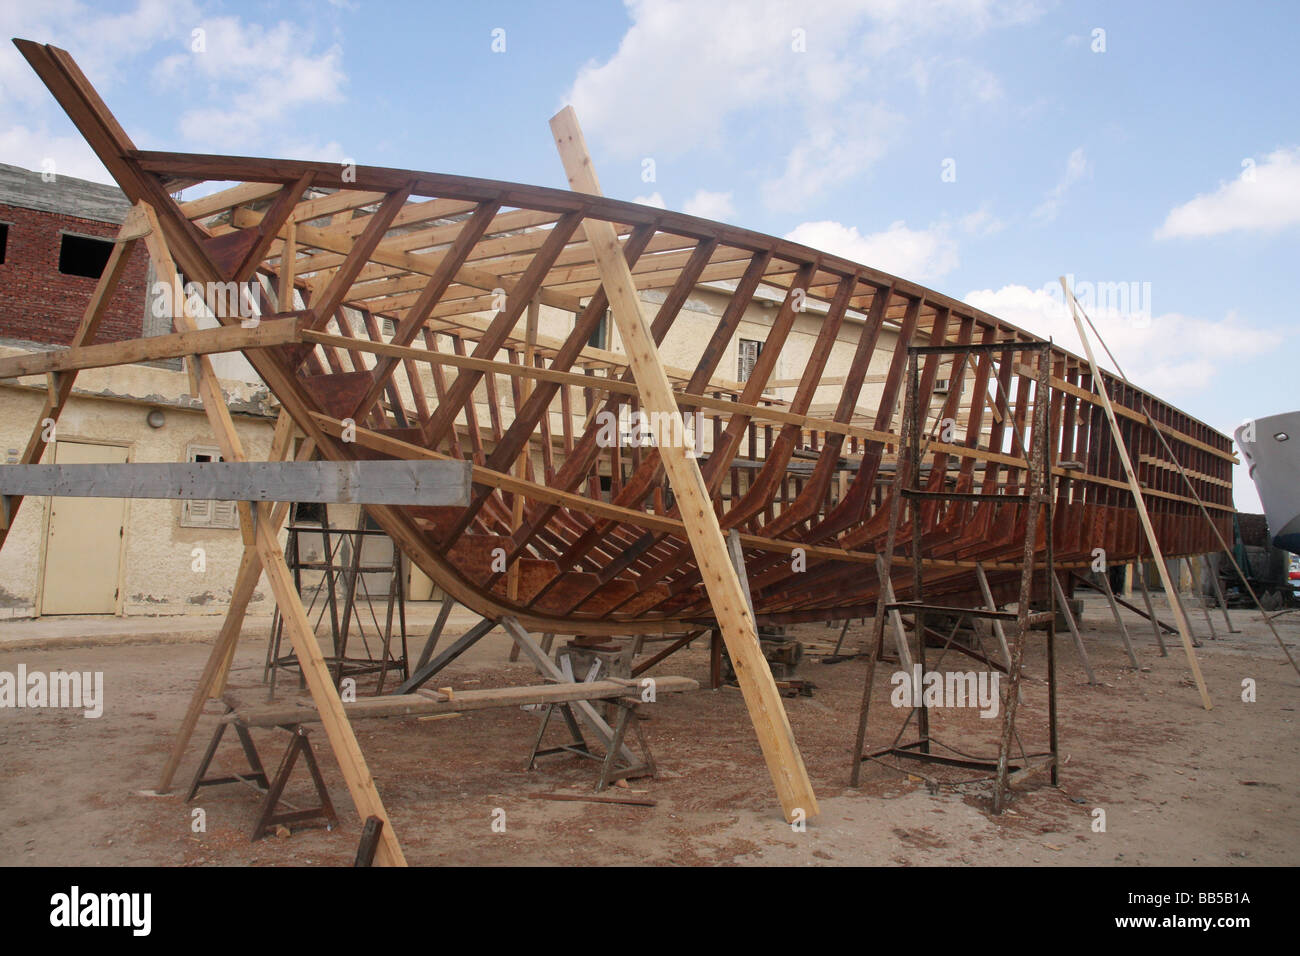 Hand Building Wooden Boats In Alexandria Egypt Stock Photo